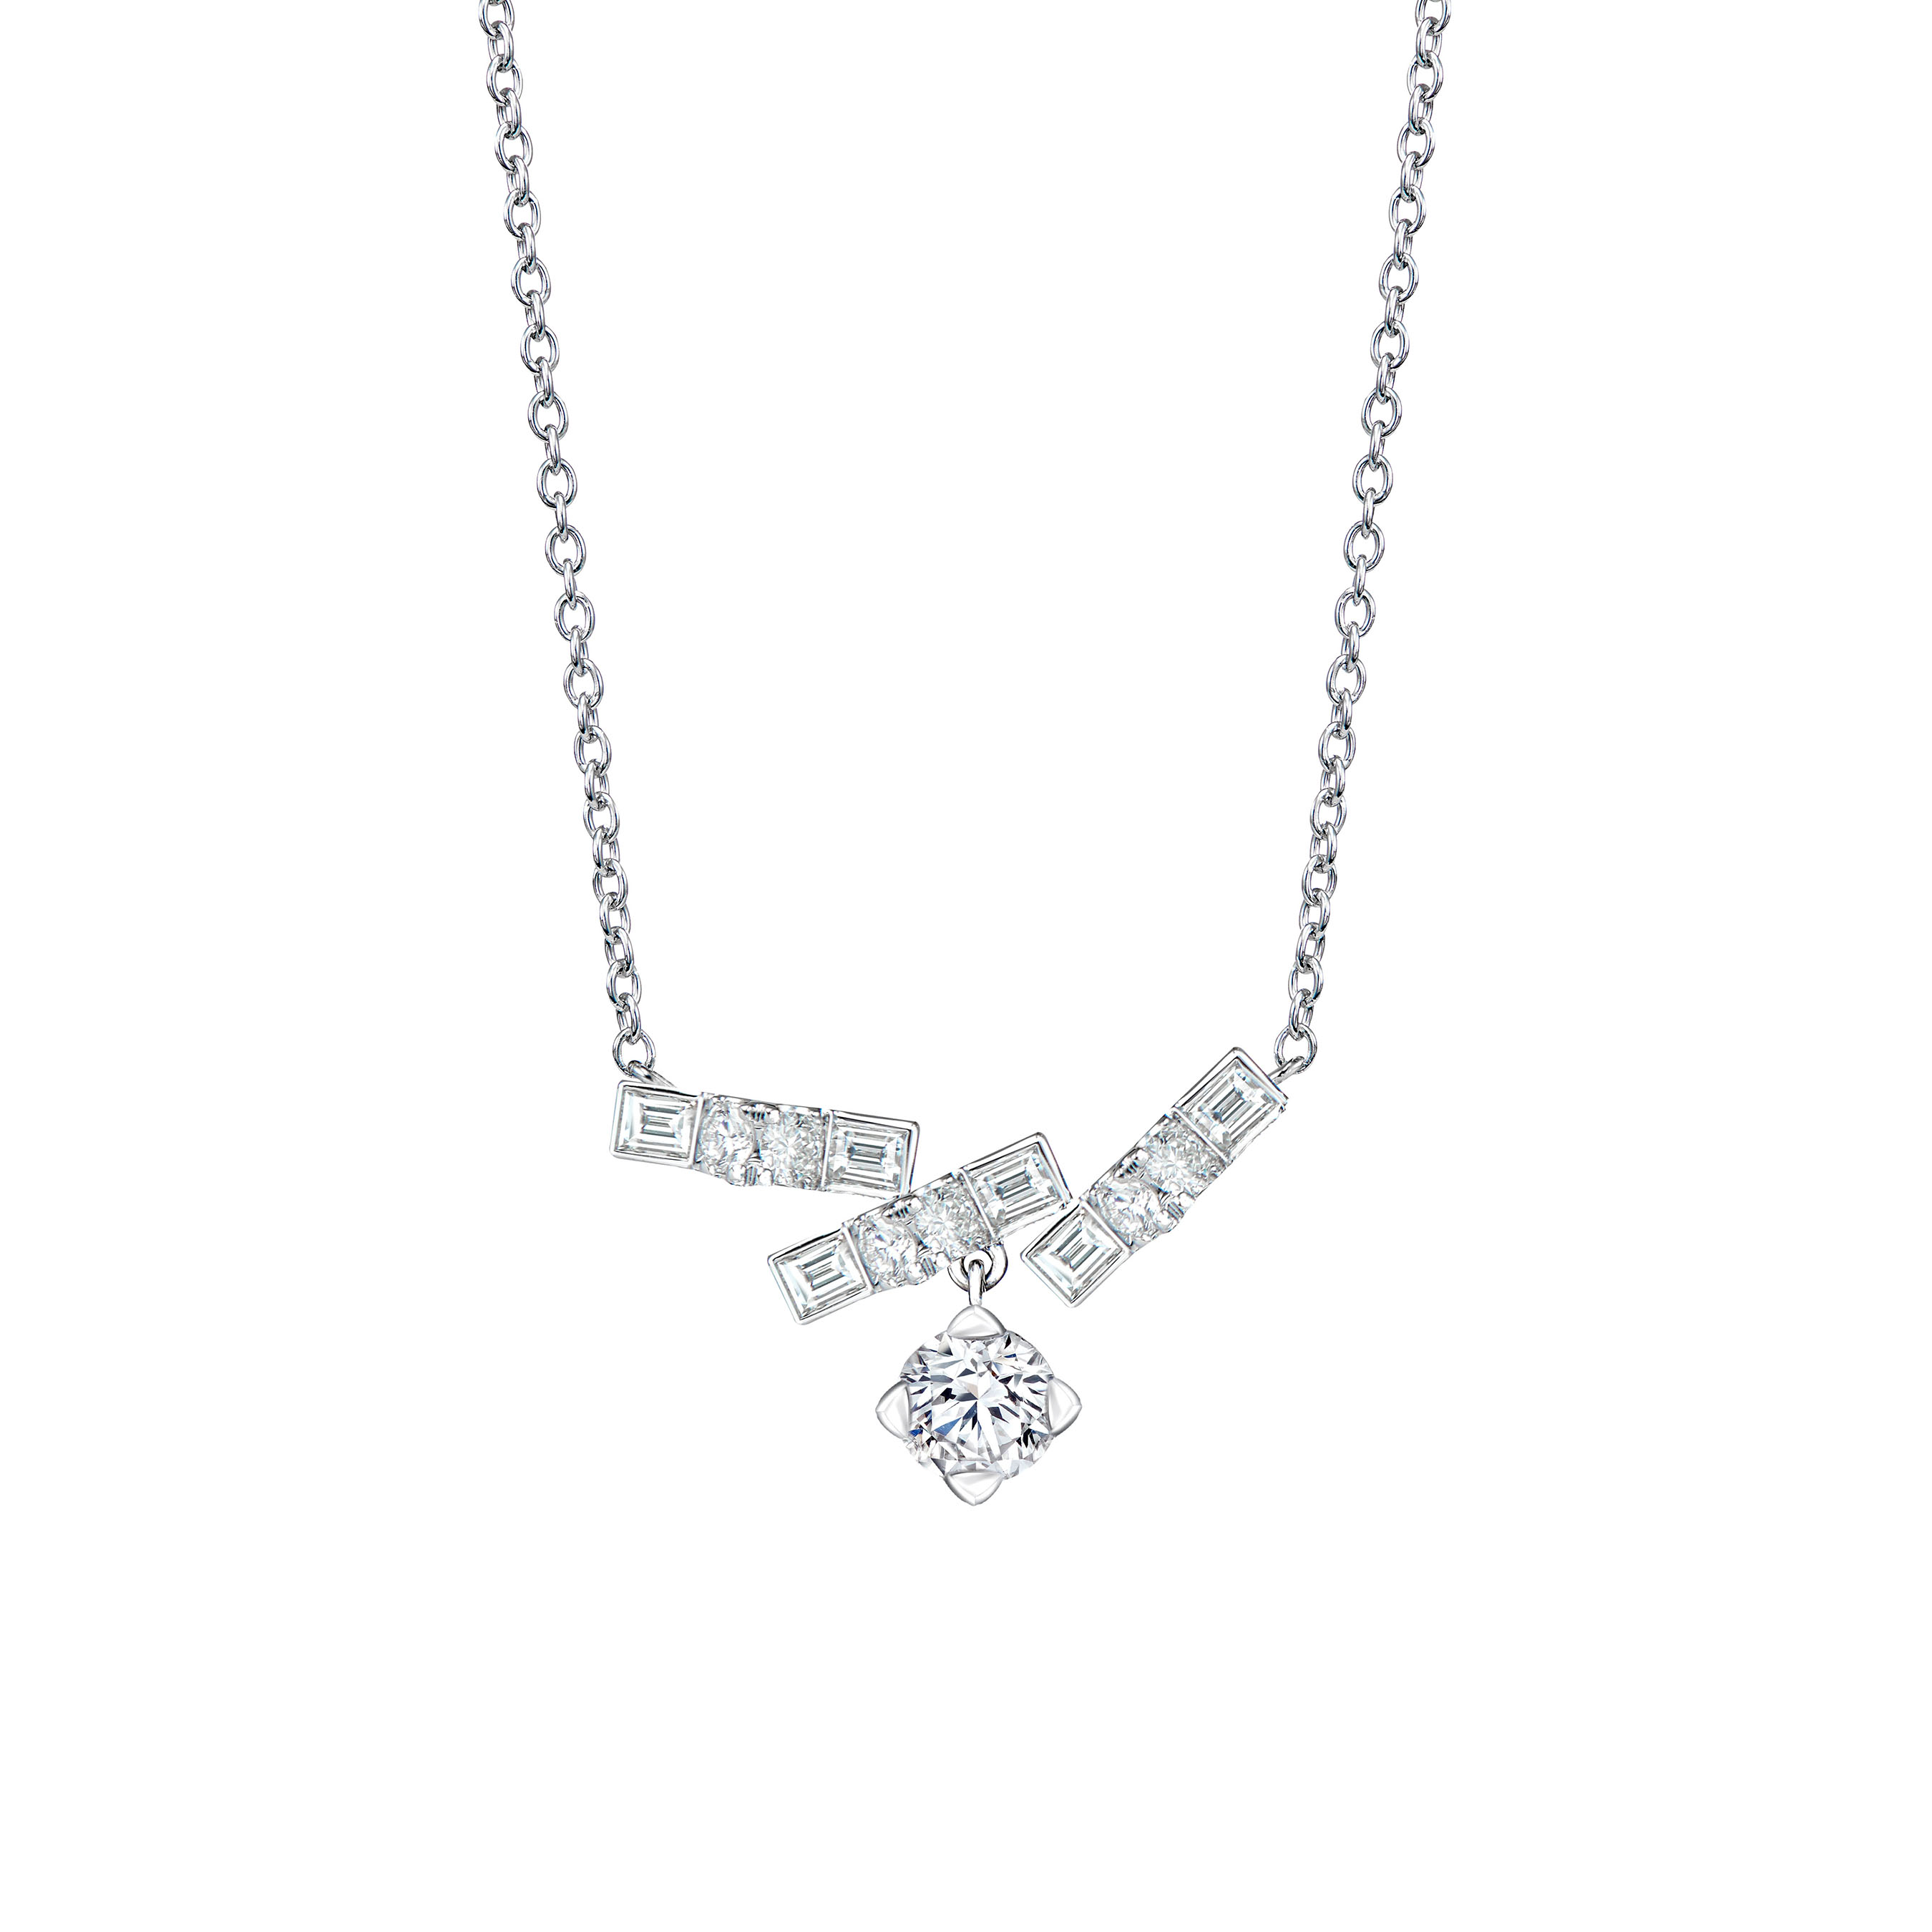 Forevermark Vero Amore Necklace